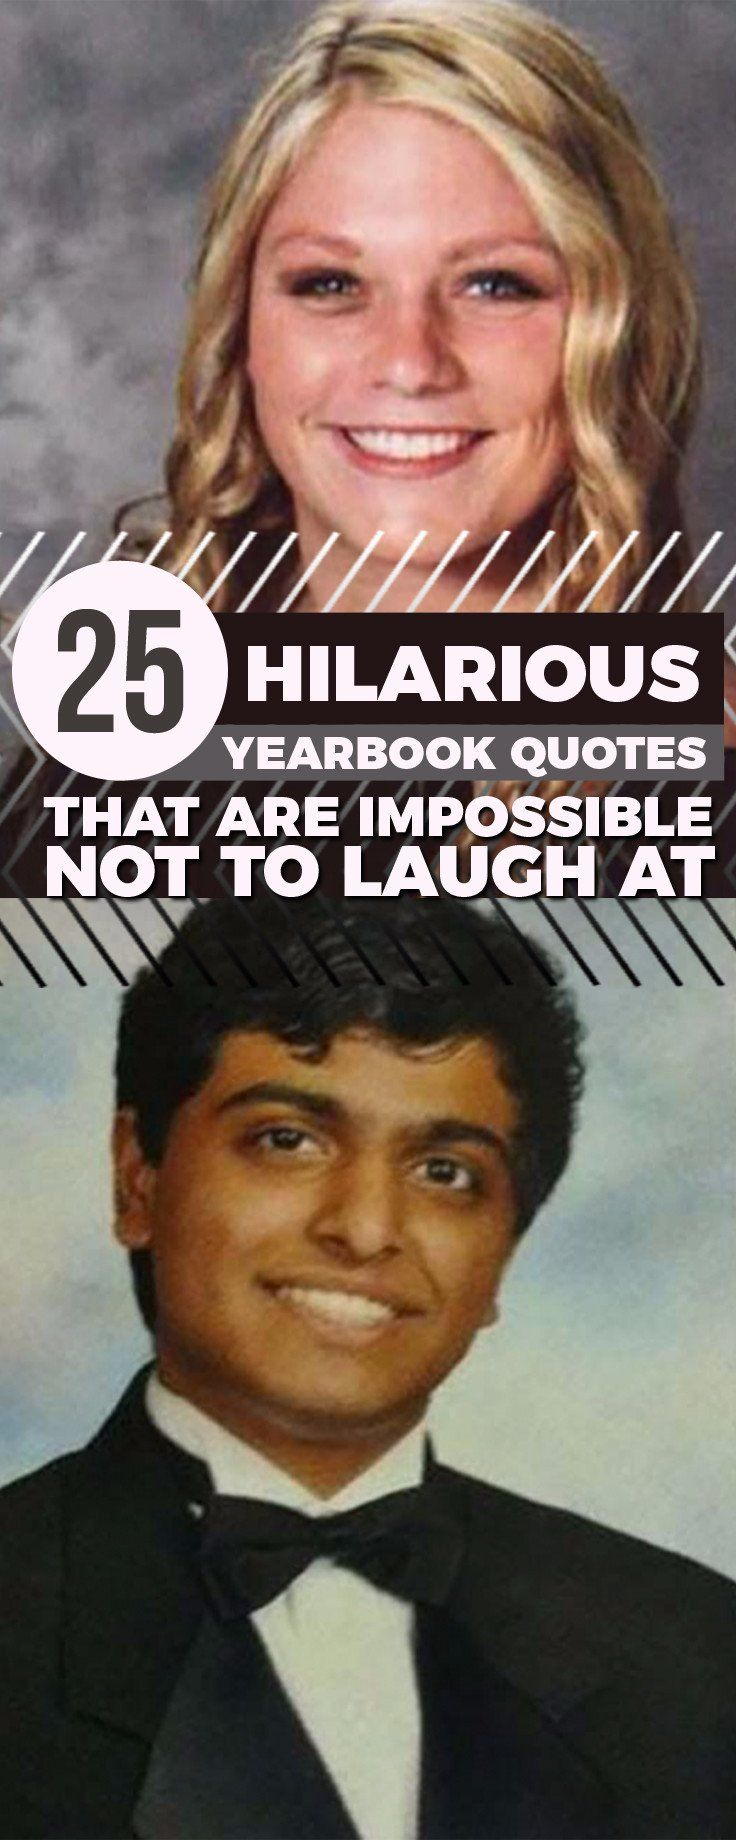 25 Hilarious Yearbook Quotes That Are Impossible Not To Laugh At Running Shoes For Men Sneakers Men Fashion Yearbook Quotes